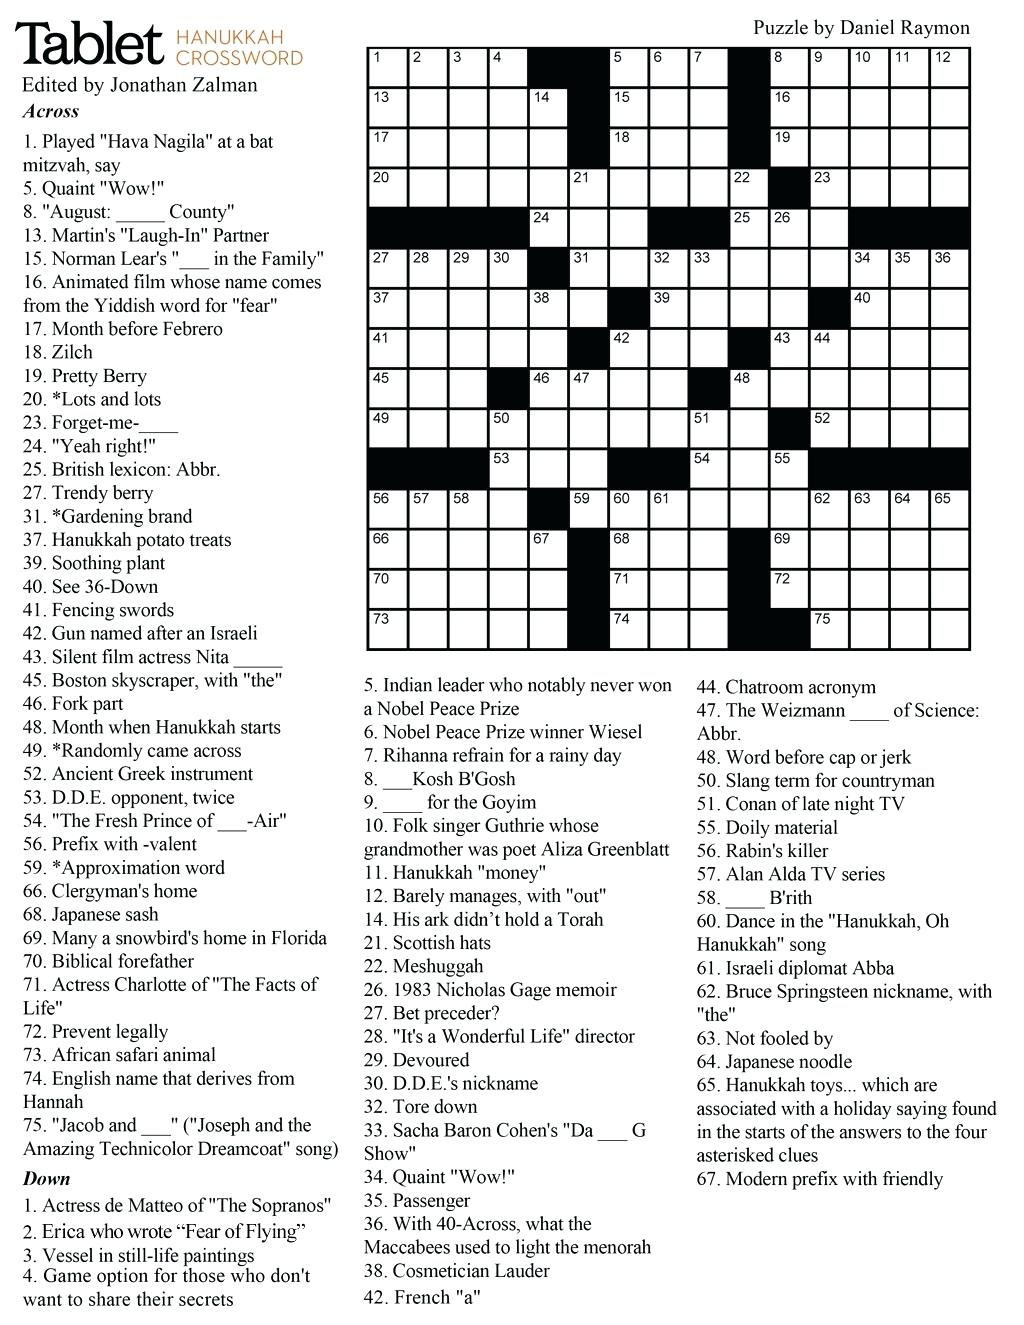 Middle School Crossword Puzzles Raunchy Some Of The Words In The - Printable Puzzle Middle School